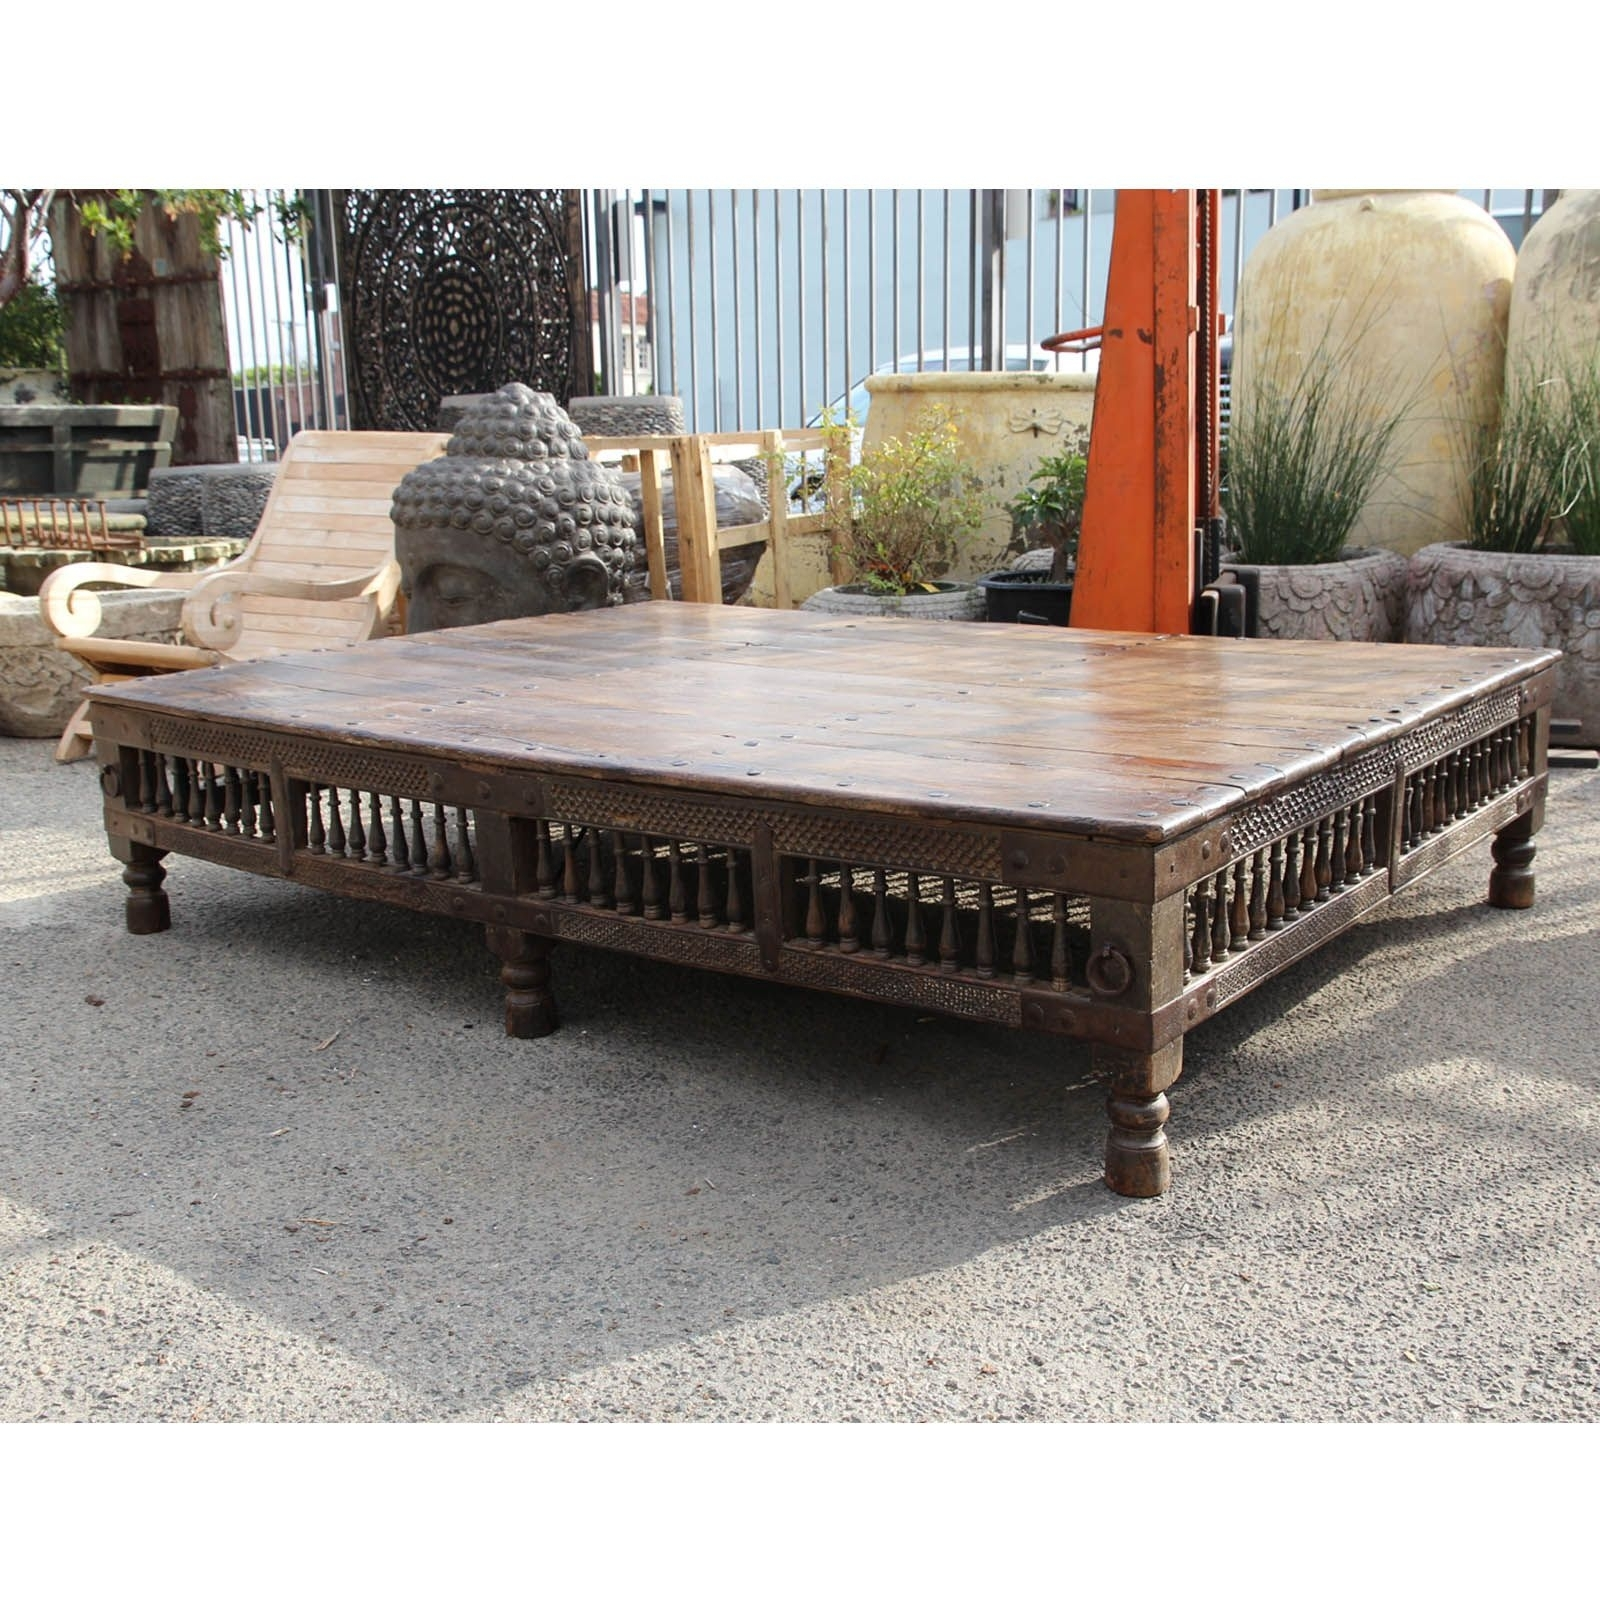 Antique Indian Thaket Coffee Table. Teak Wood Construction With pertaining to Large Teak Coffee Tables (Image 3 of 30)